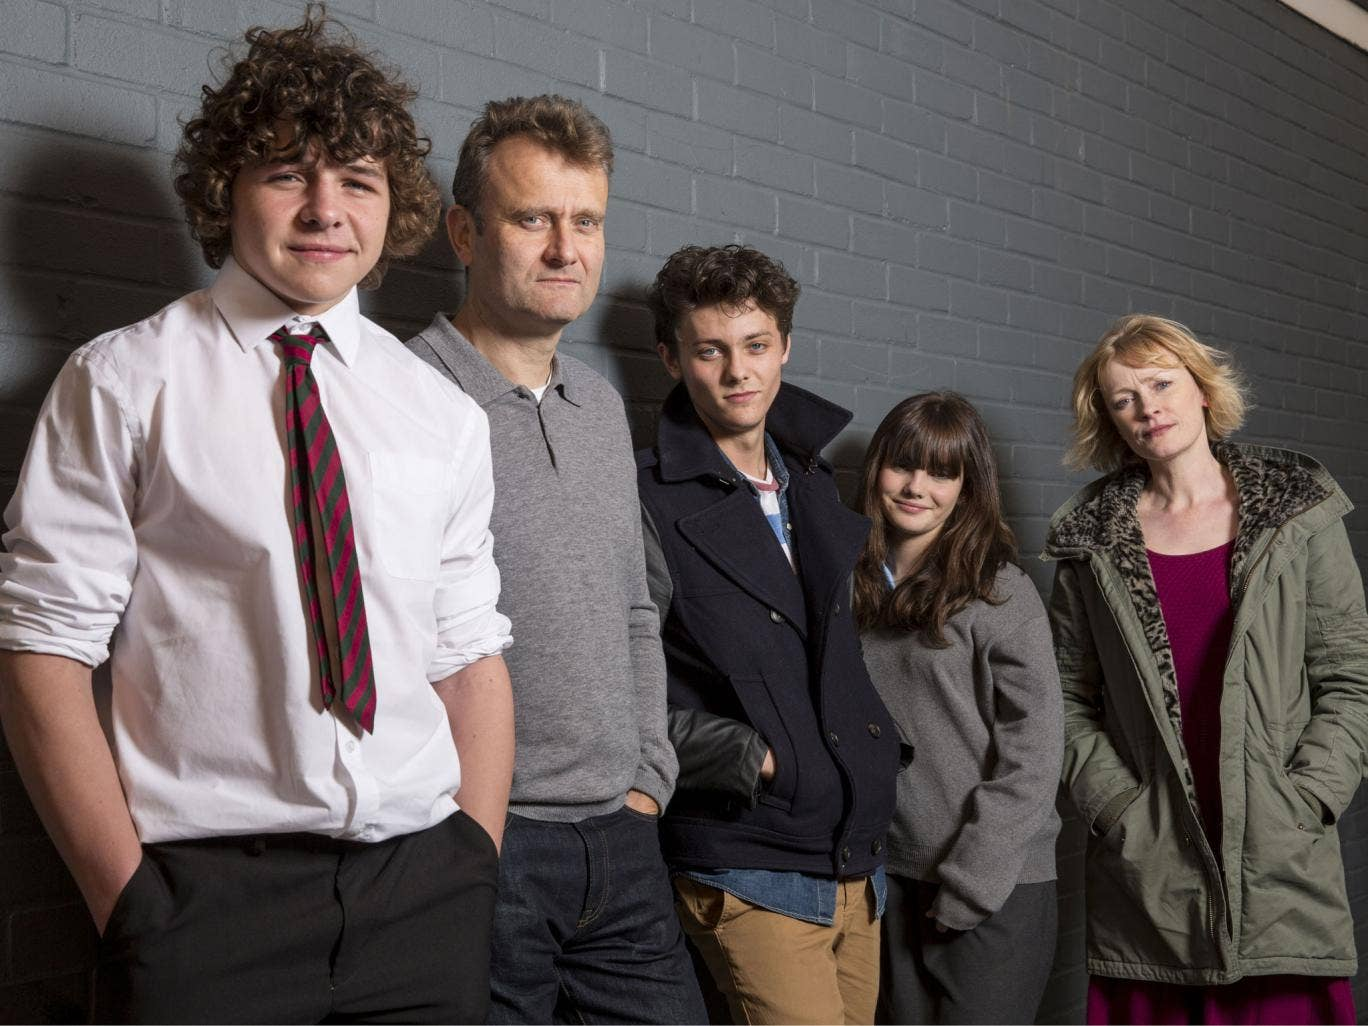 Catch Outnumbered tonight at 9pm on BBC1, starring Daniel Roche, Hugh Dennis, Tyger Drew-Honey, Ramona Marquez and Claire Skinner